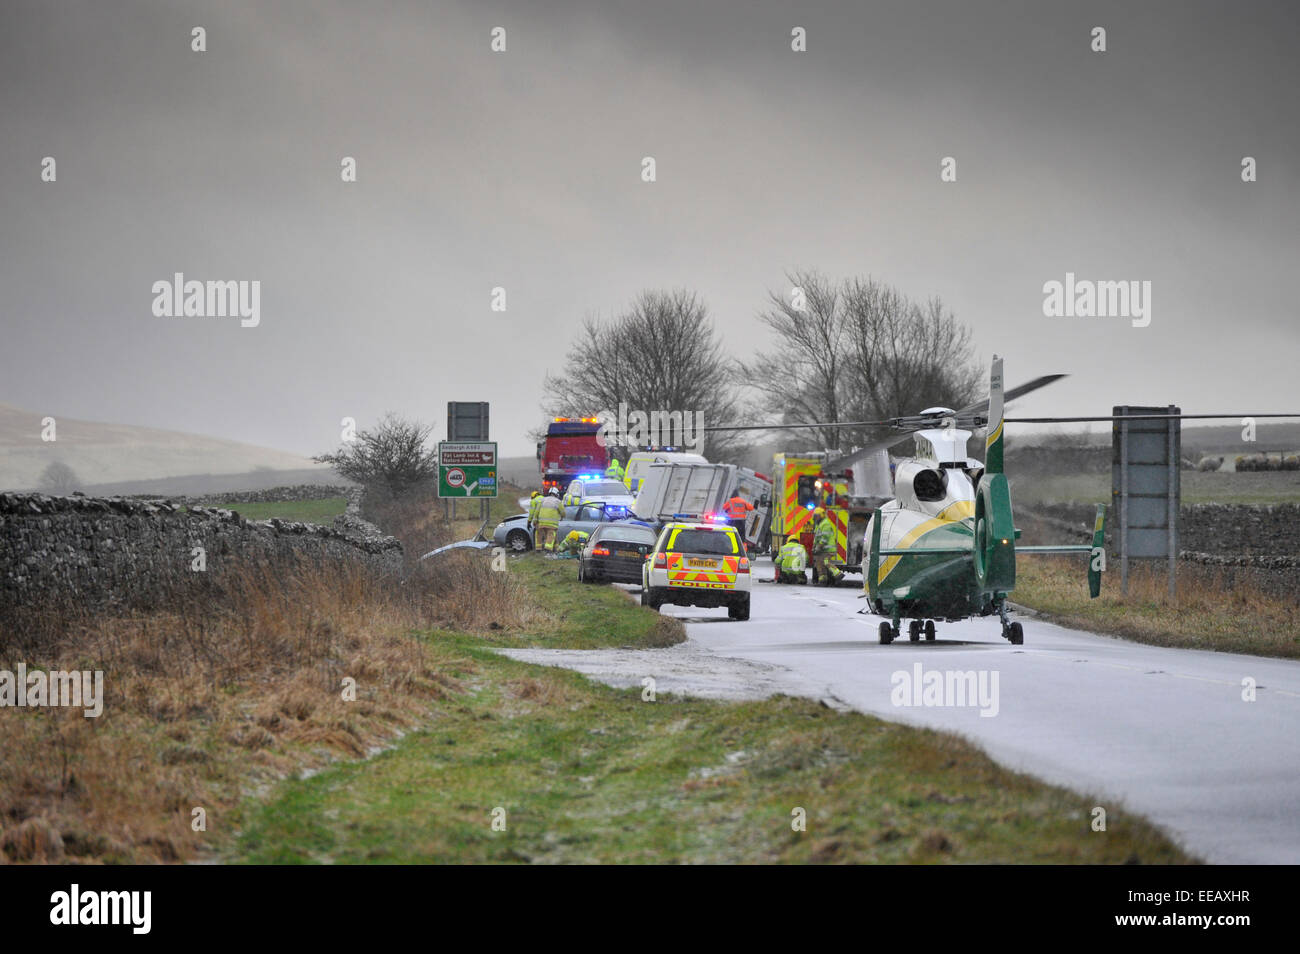 Air Ambulance attending a road traffic accidentin icy weather, Kirkby Stephen, Cumbria, UK - Stock Image